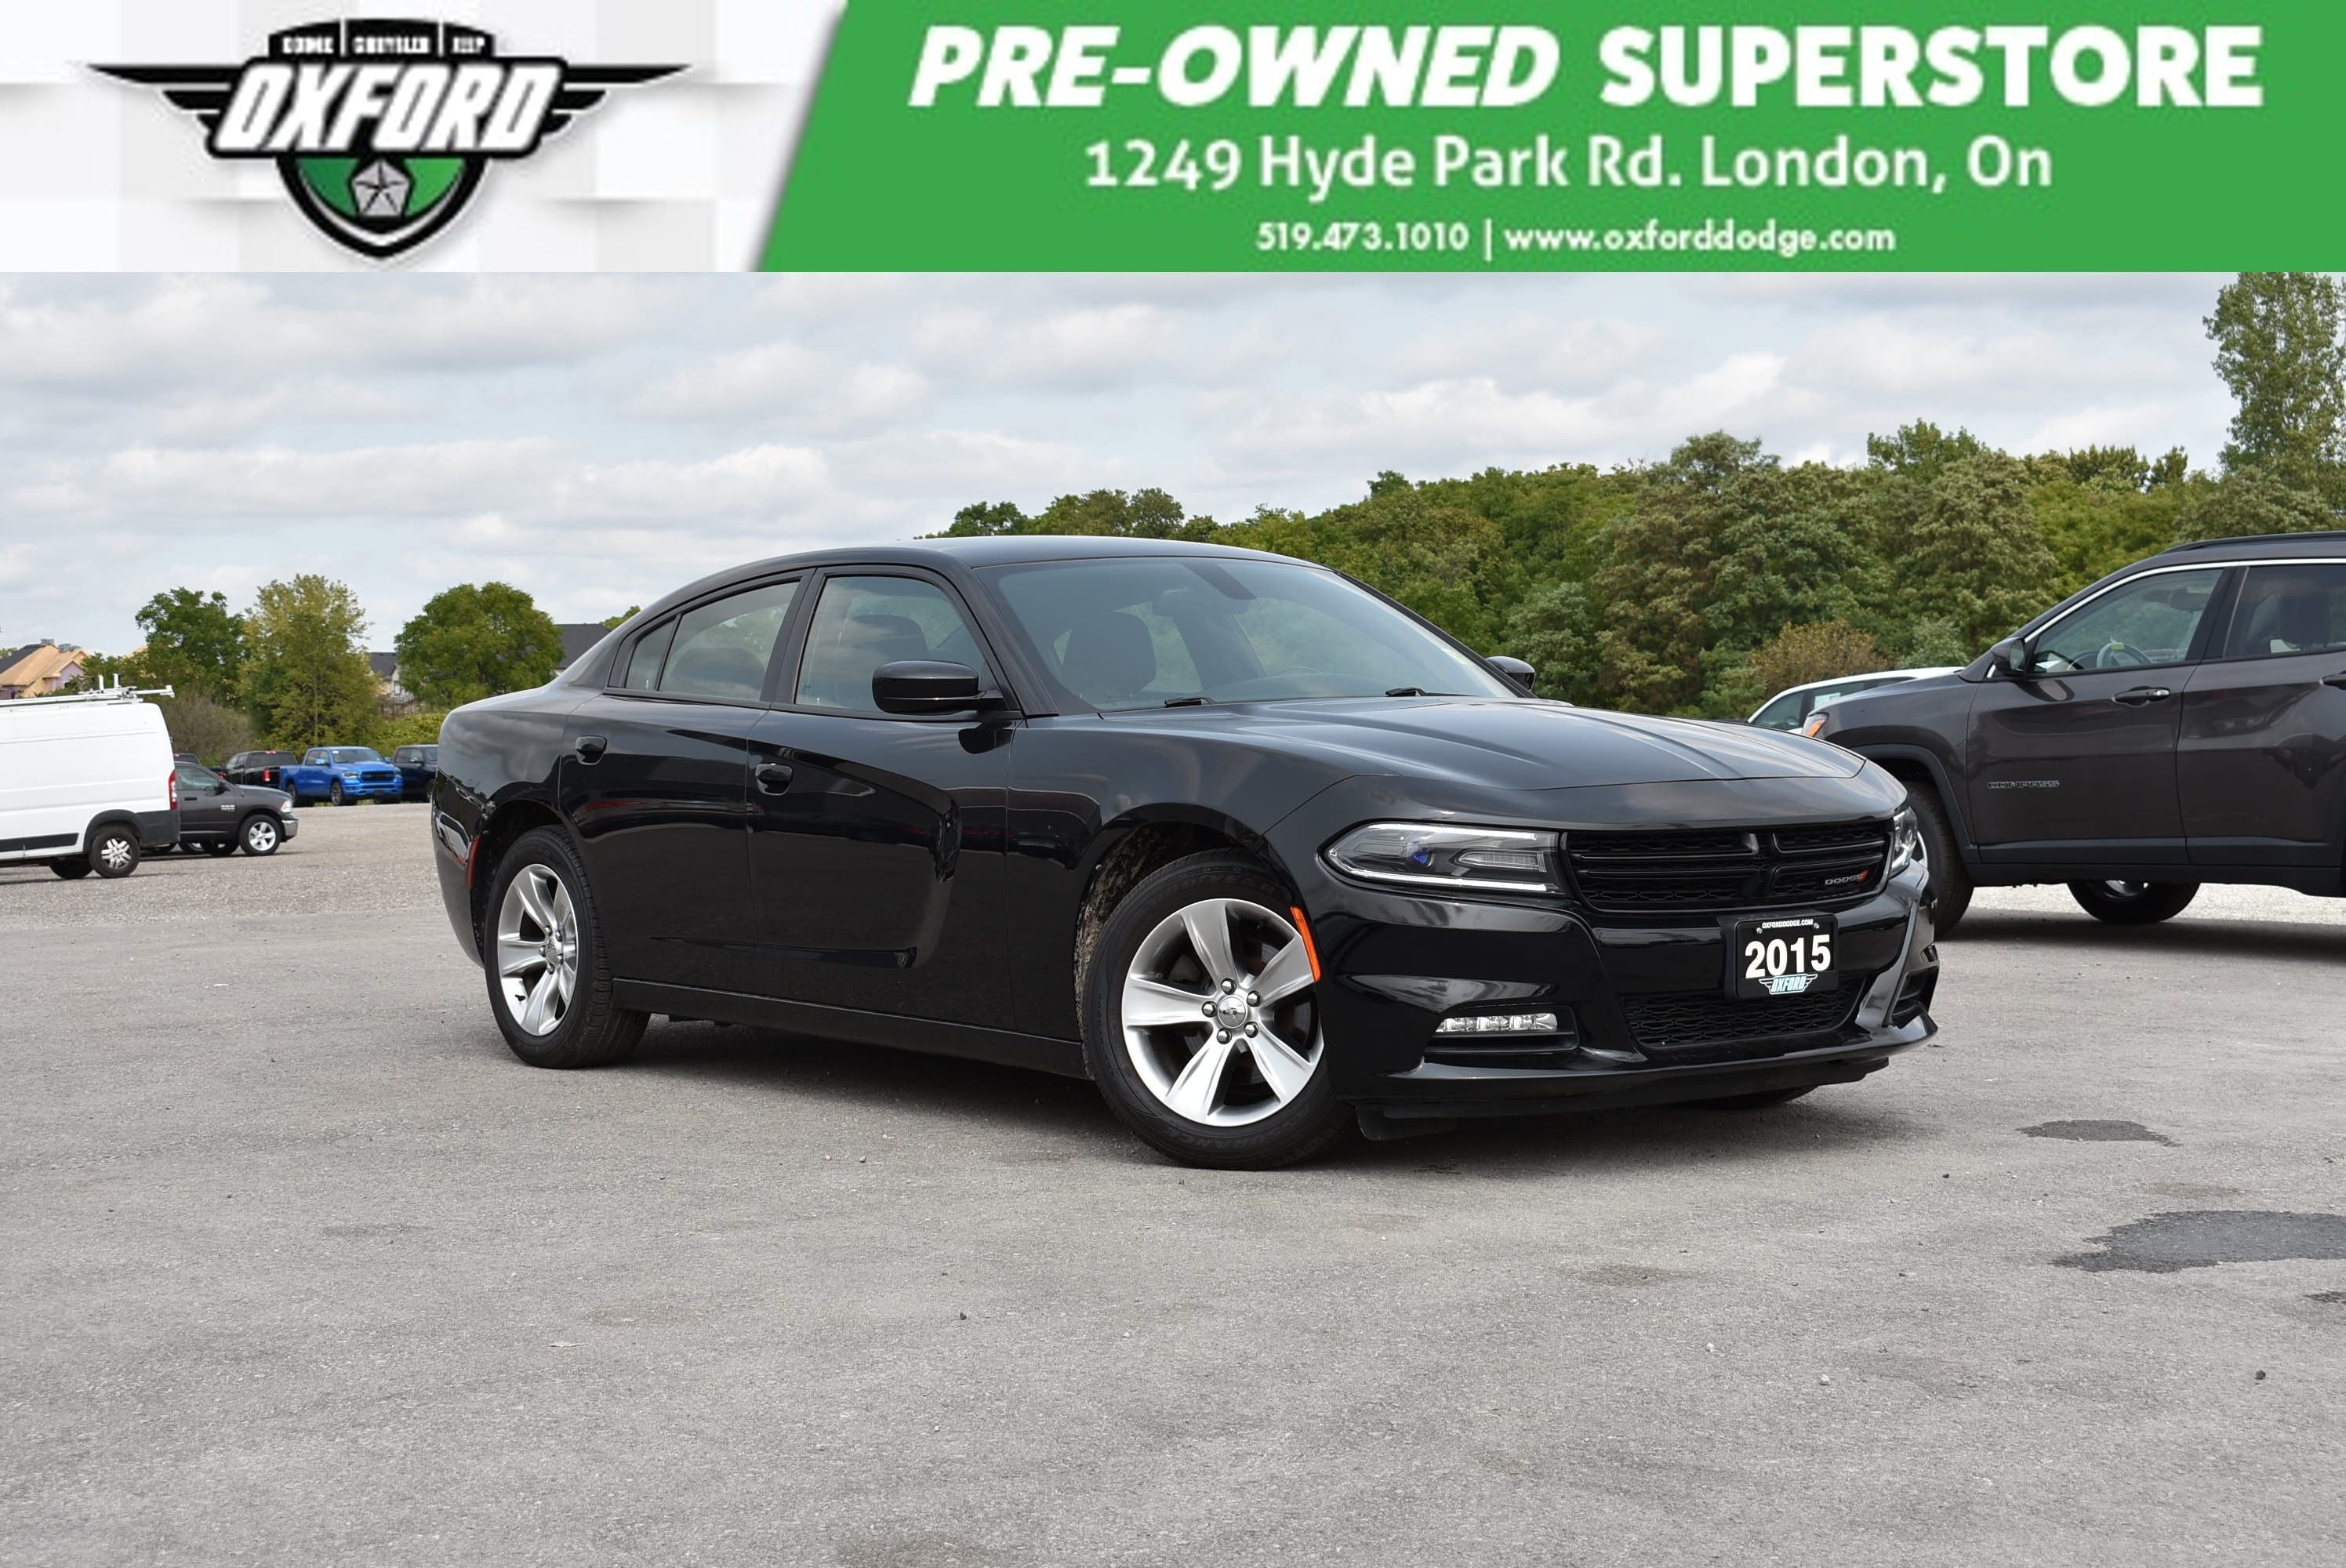 used 2015 Dodge Charger car, priced at $17,988